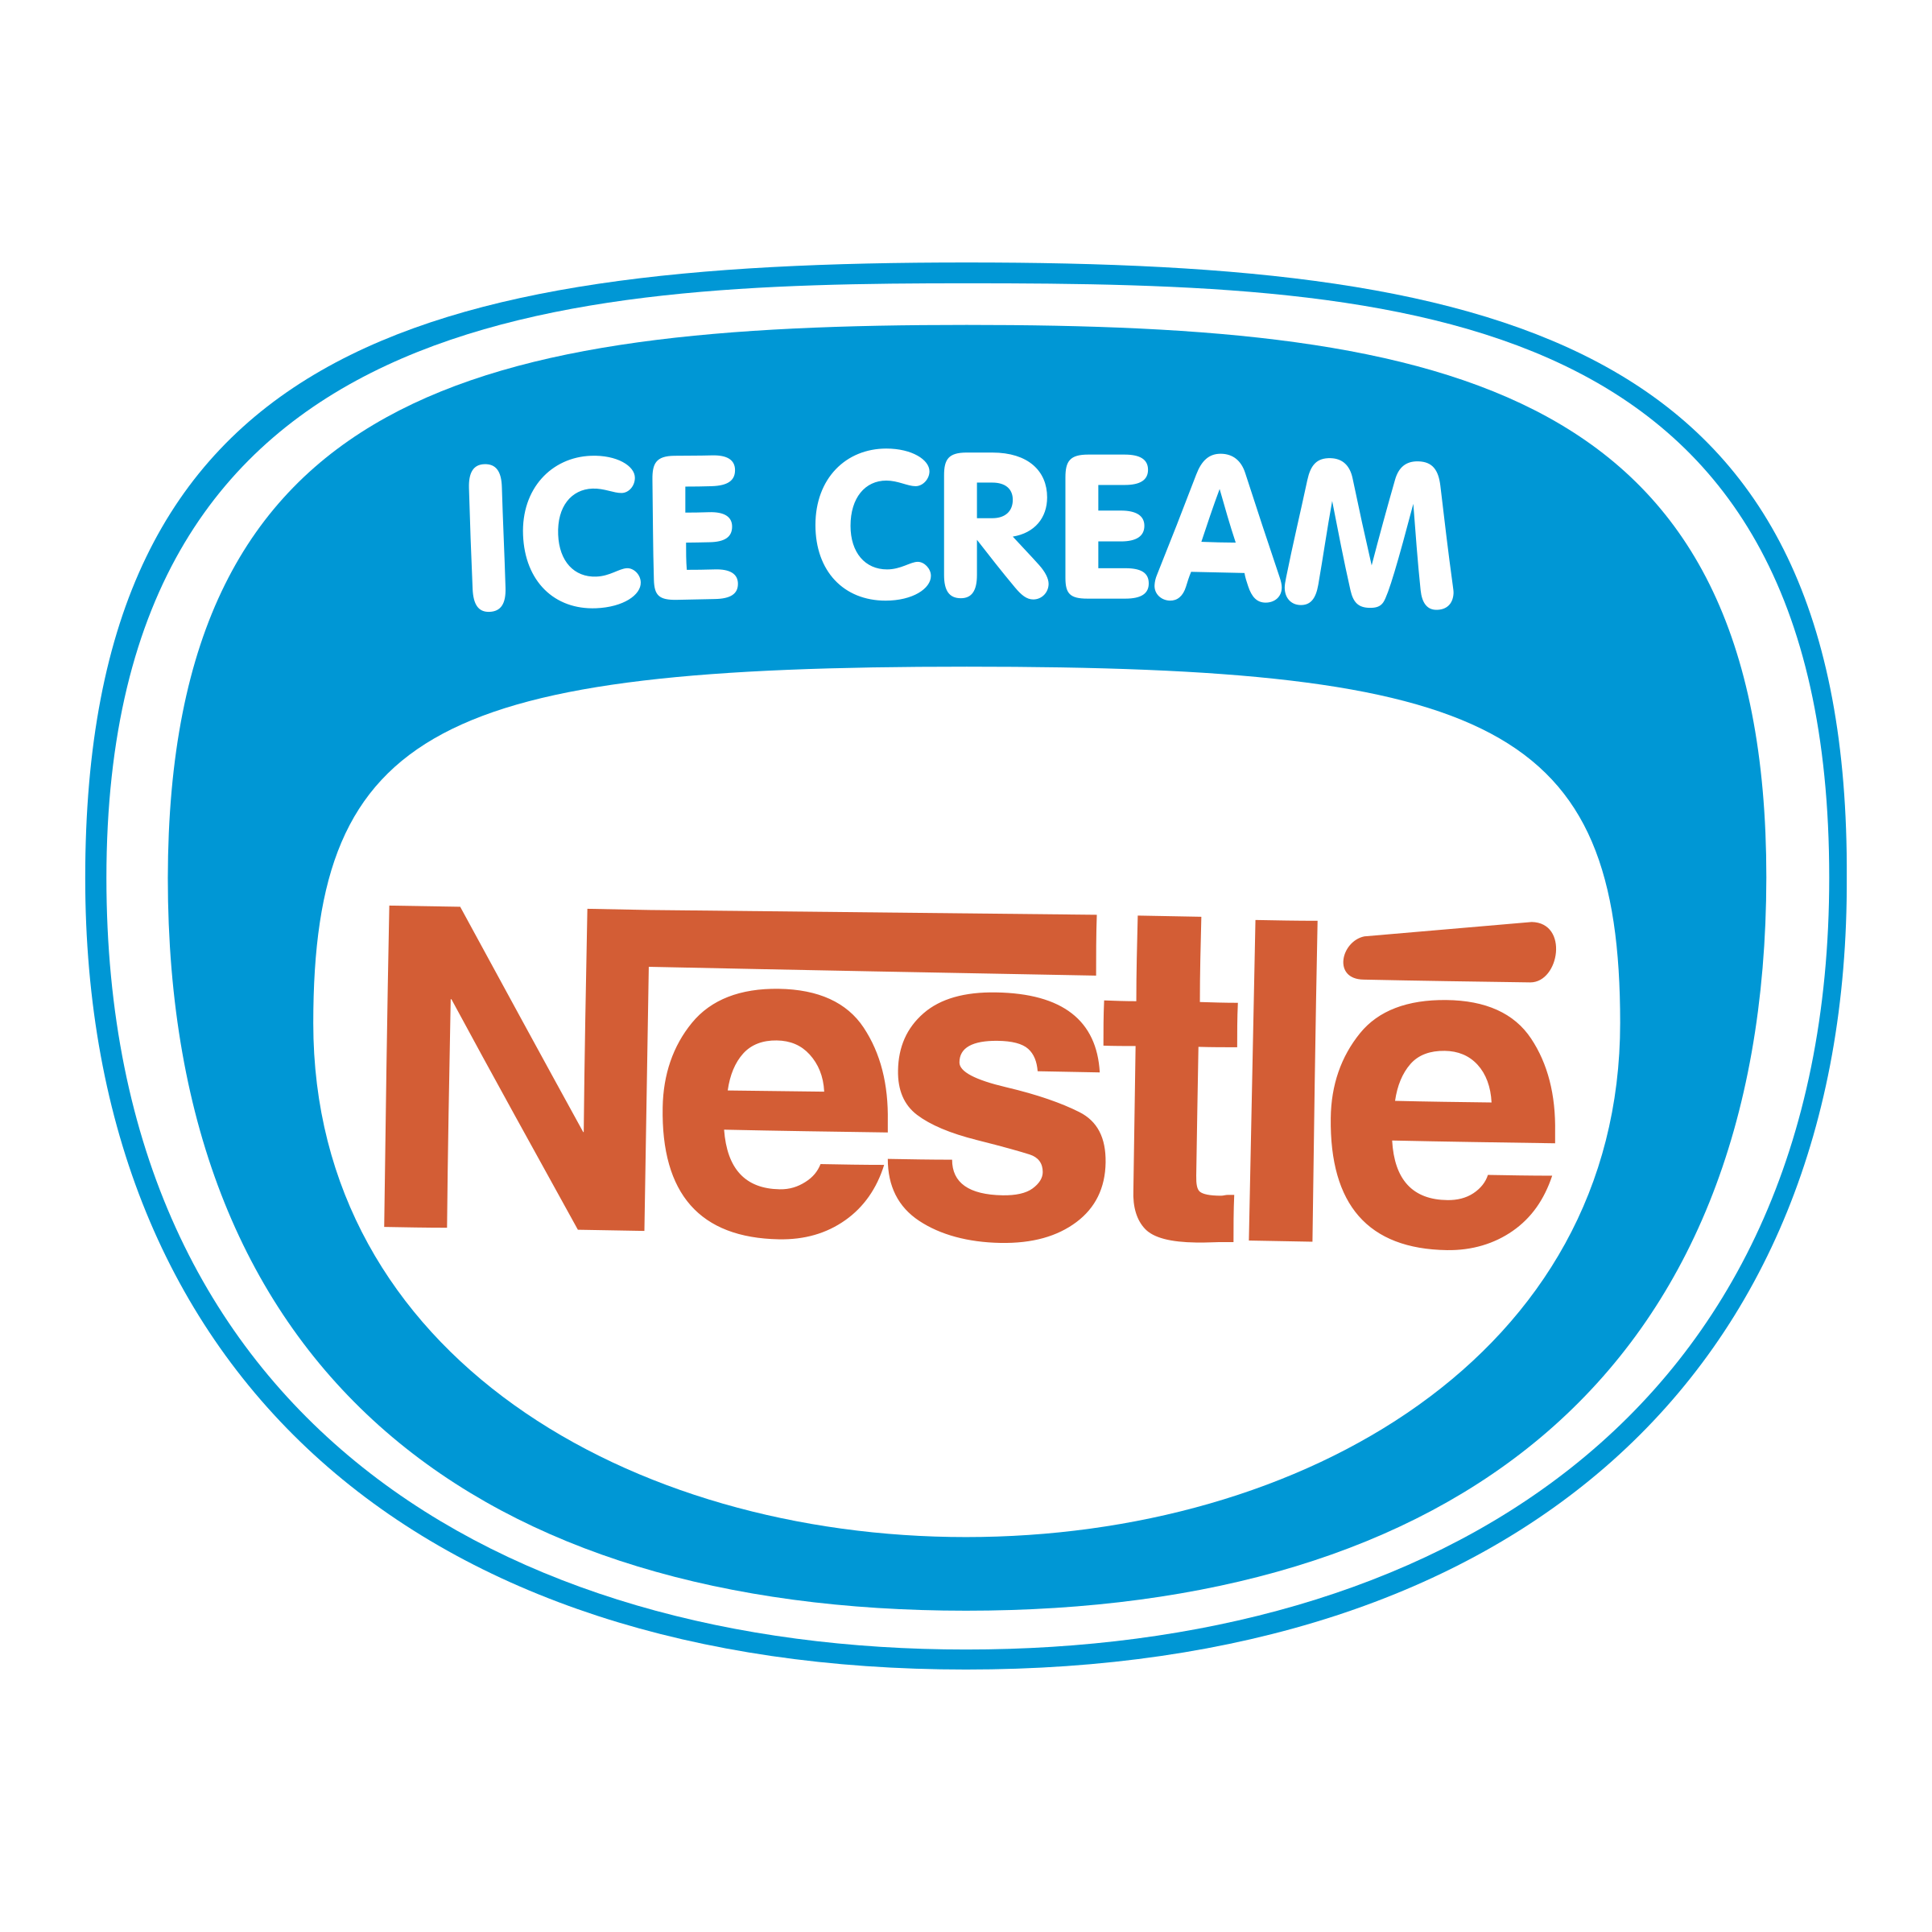 nestle ice cream logo png transparent amp svg vector